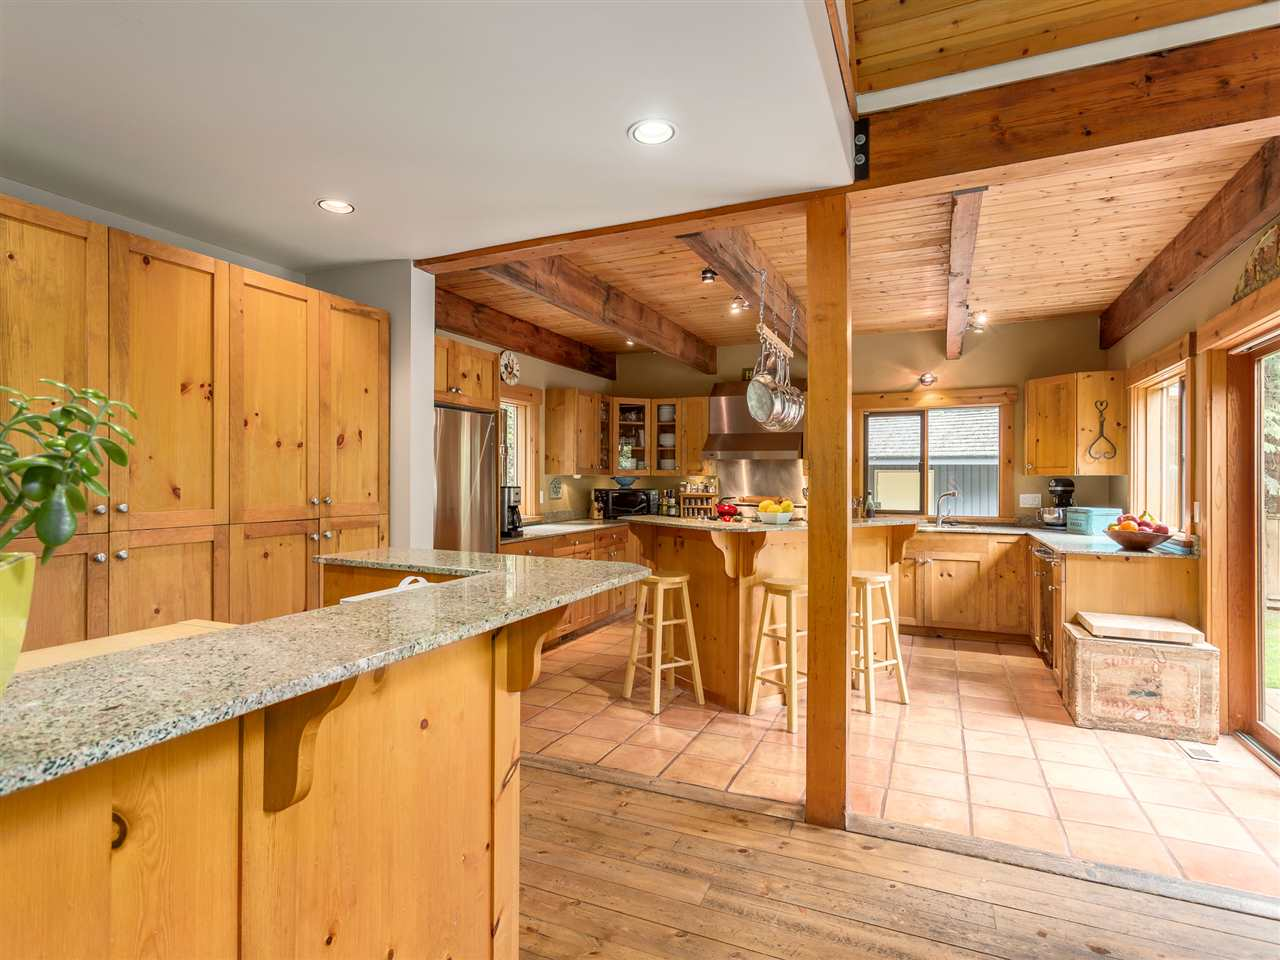 Photo 5: 2601 THE Boulevard in Squamish: Garibaldi Highlands House for sale : MLS® # R2176534